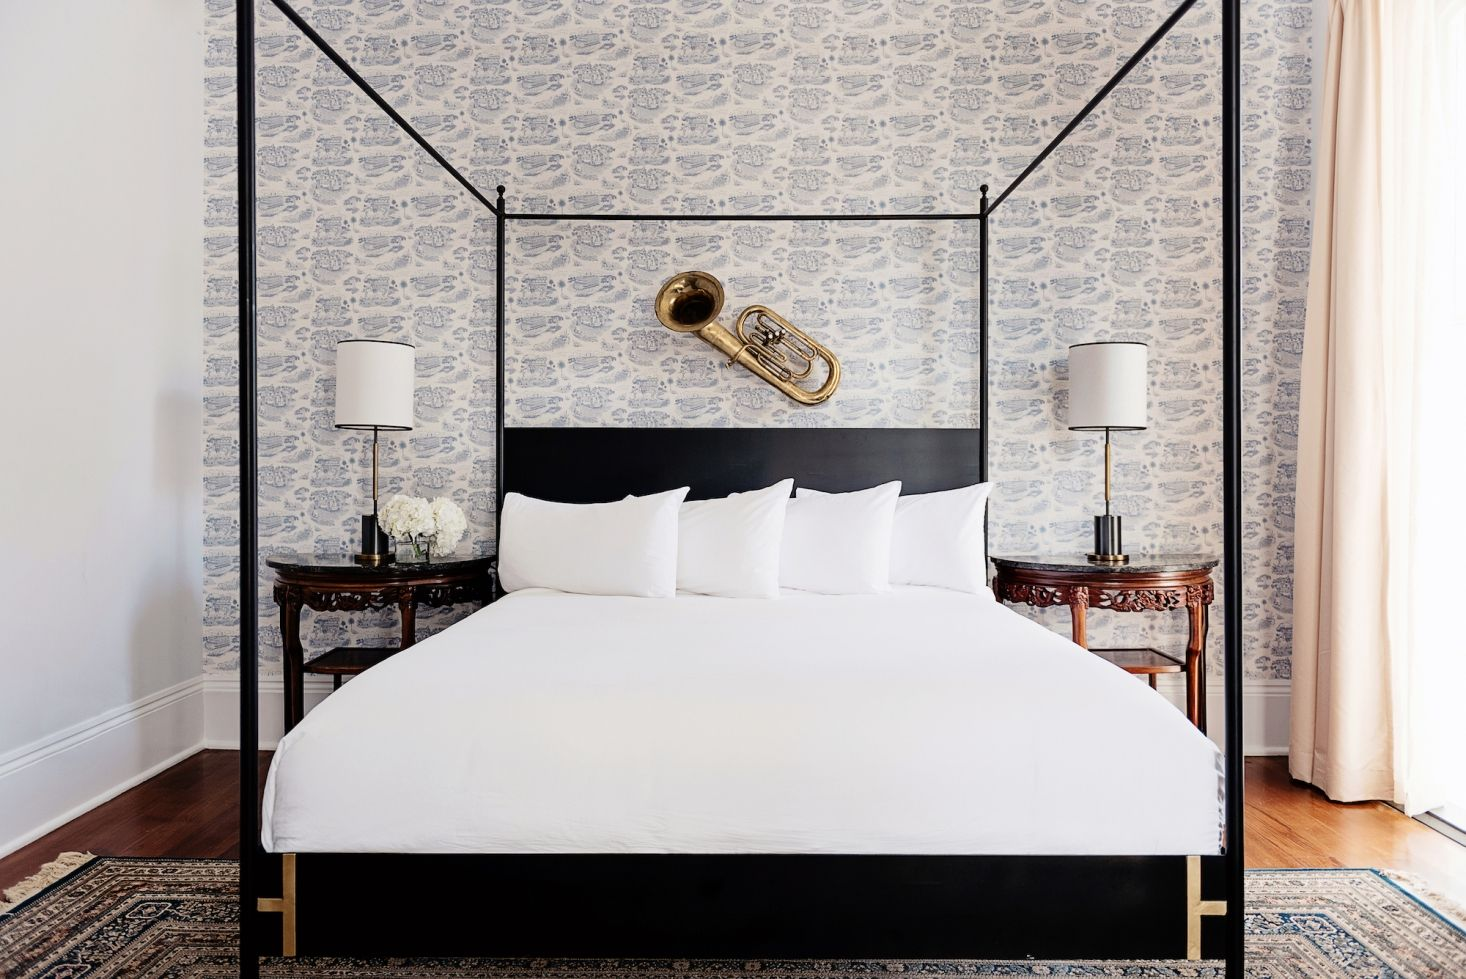 Each Bedroom Sports Toile-style Wallpaper Featuring New